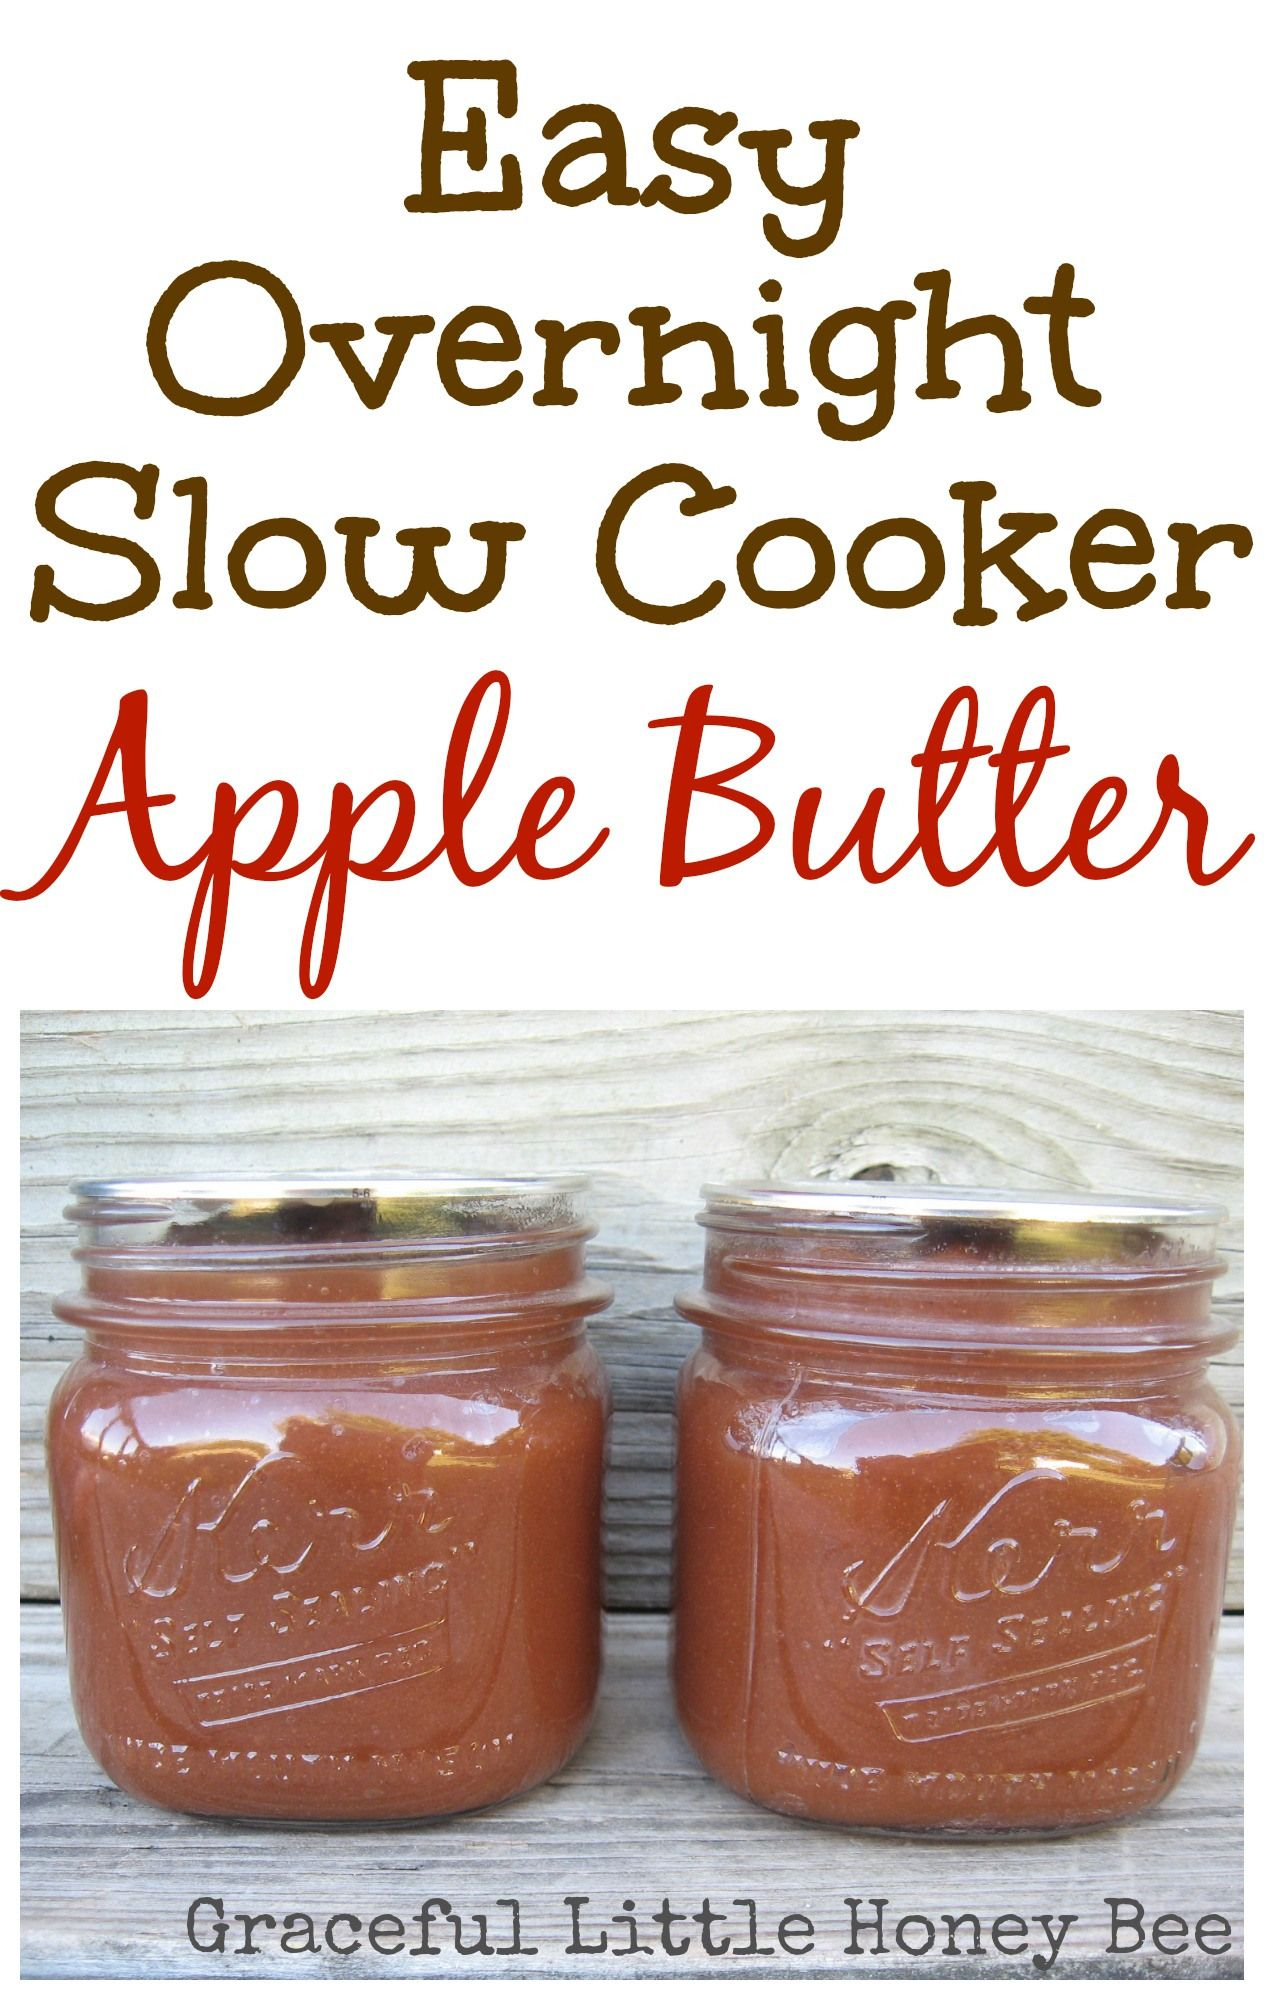 Slow Cooker Apple Butter #applerecipes